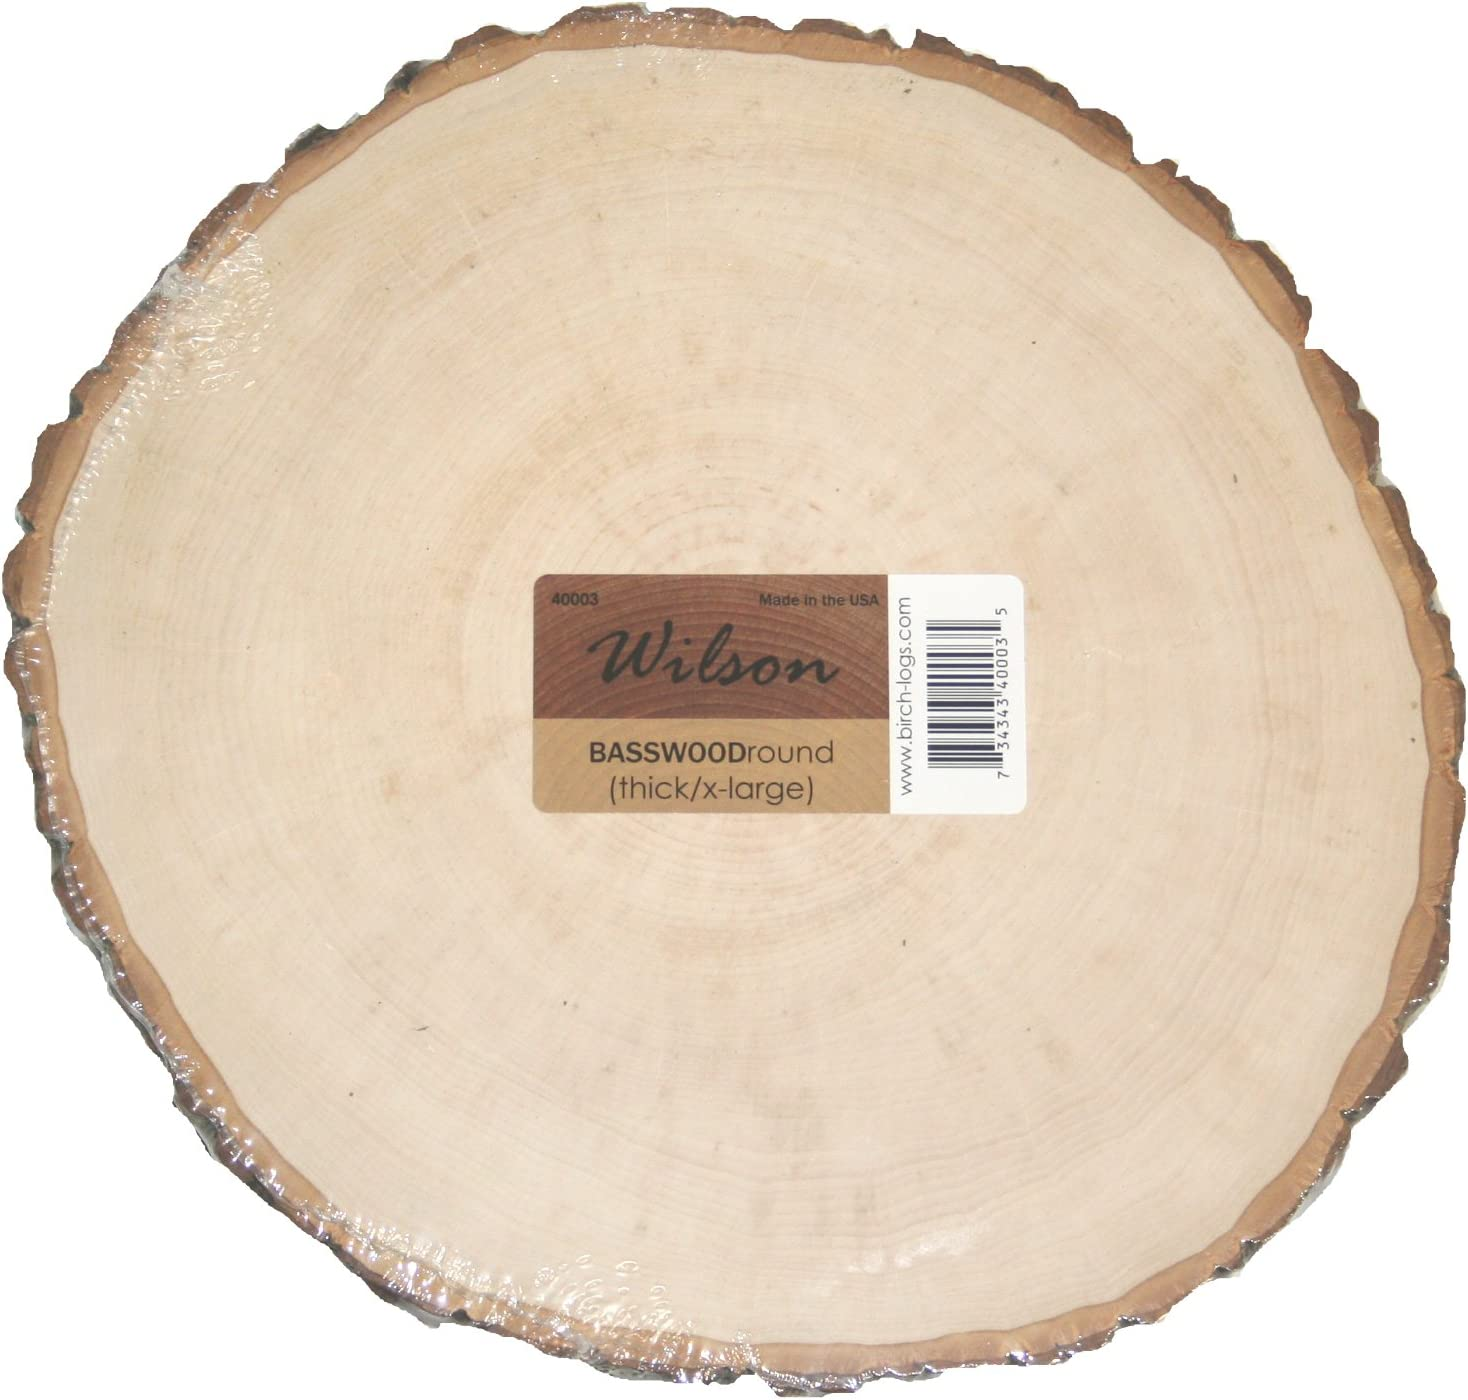 8 Crafts Uplord 1//5 Pack Round Rustic Woods Slices Great for Weddings Centerpieces Unfinished Wood